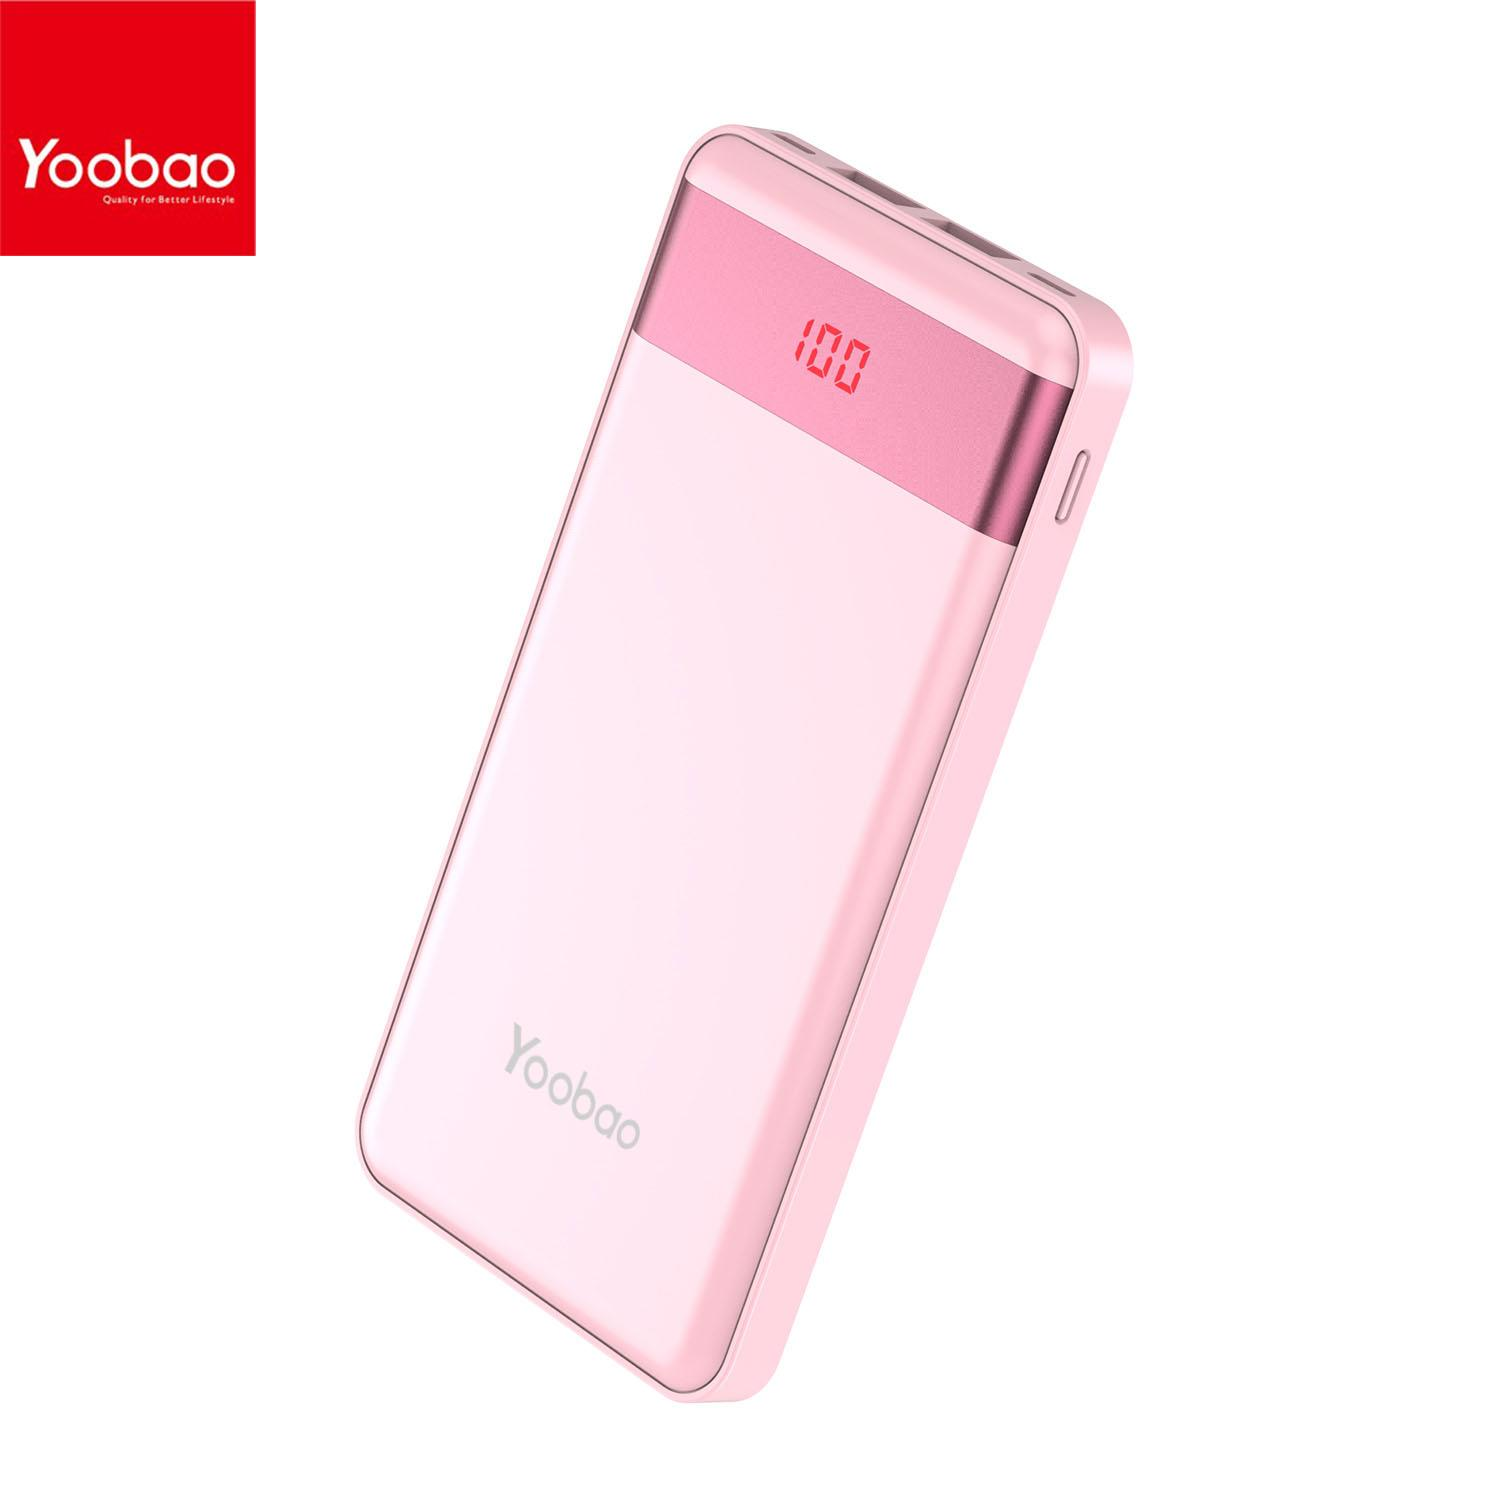 Powerbank Preis Yoobao Pl12pro 12000mah Led Power Bank